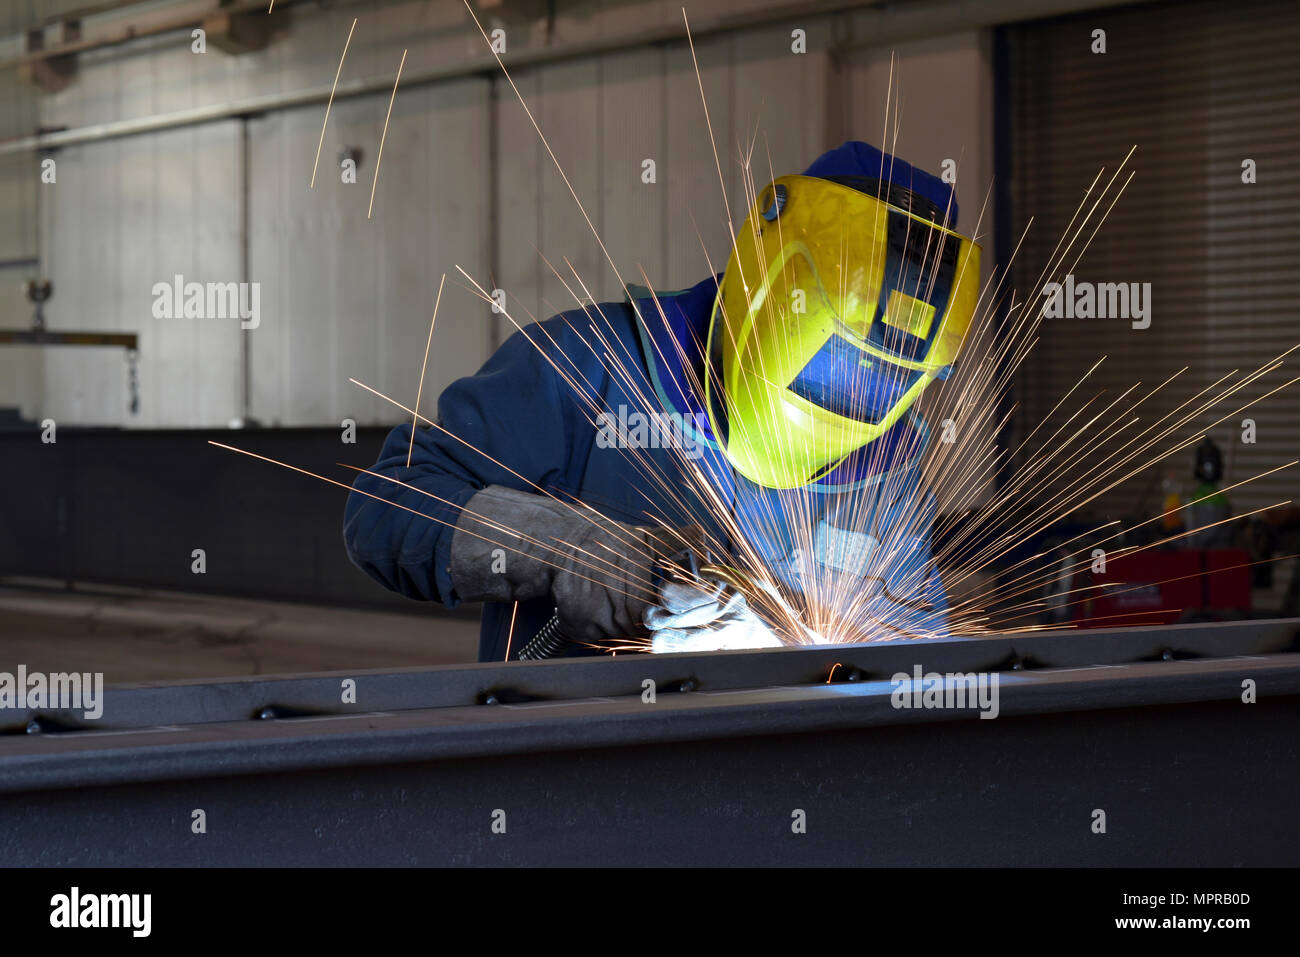 Welder at work in factory - Stock Image